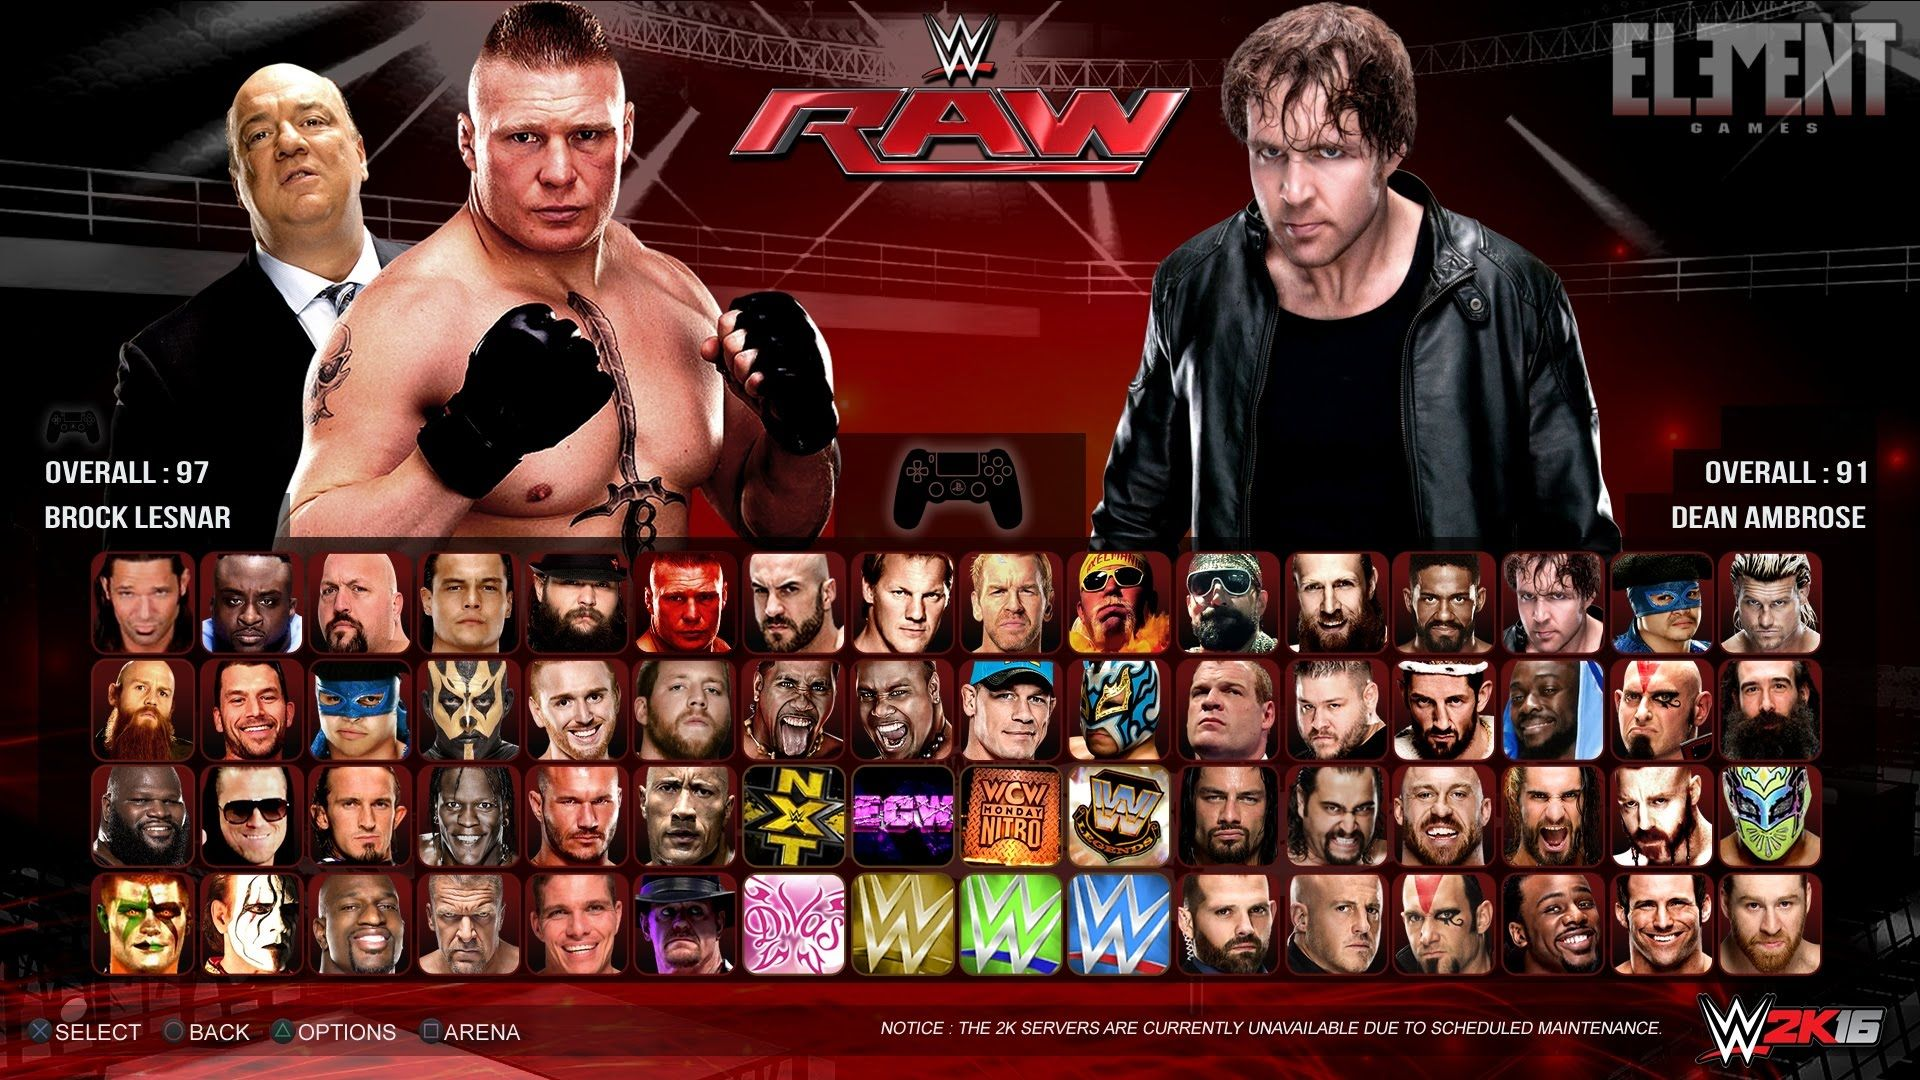 Wwe 2k16 ps2 iso free download | Download ps2 wwe 2k16 iso